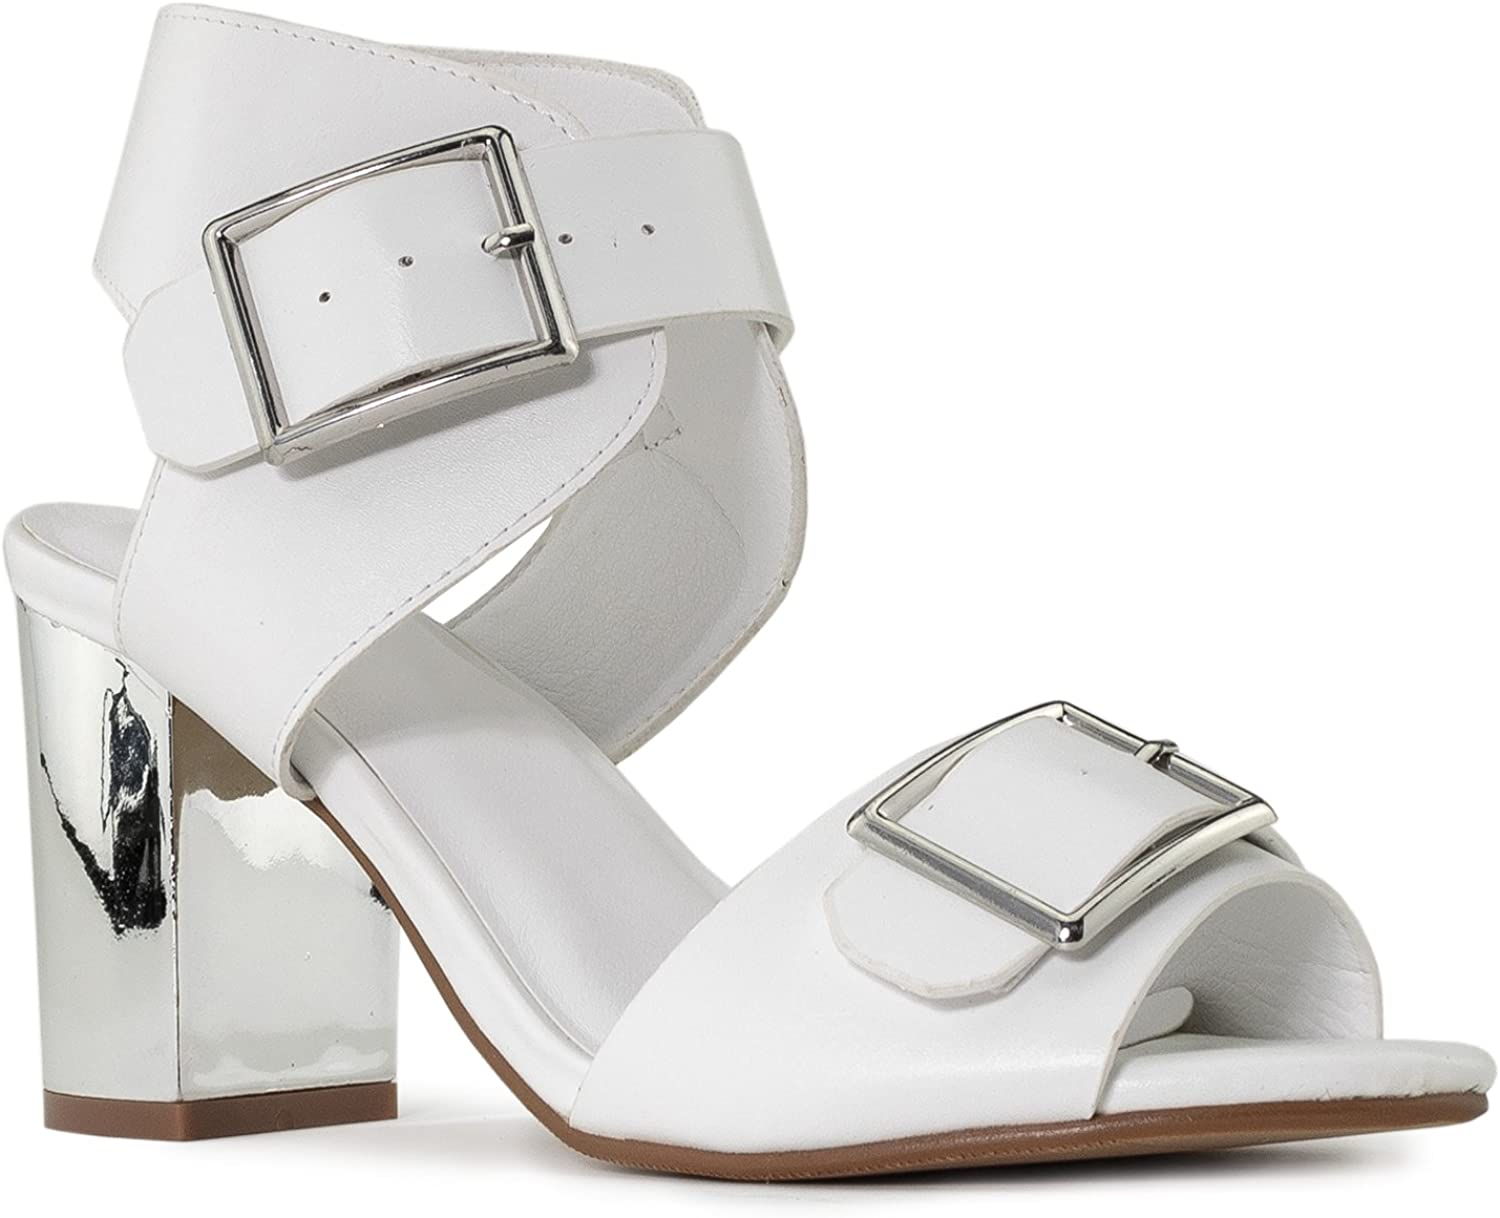 RF ROOM OF FASHION Women's Double Strap Mirror Chunky Heel Dress Sandals